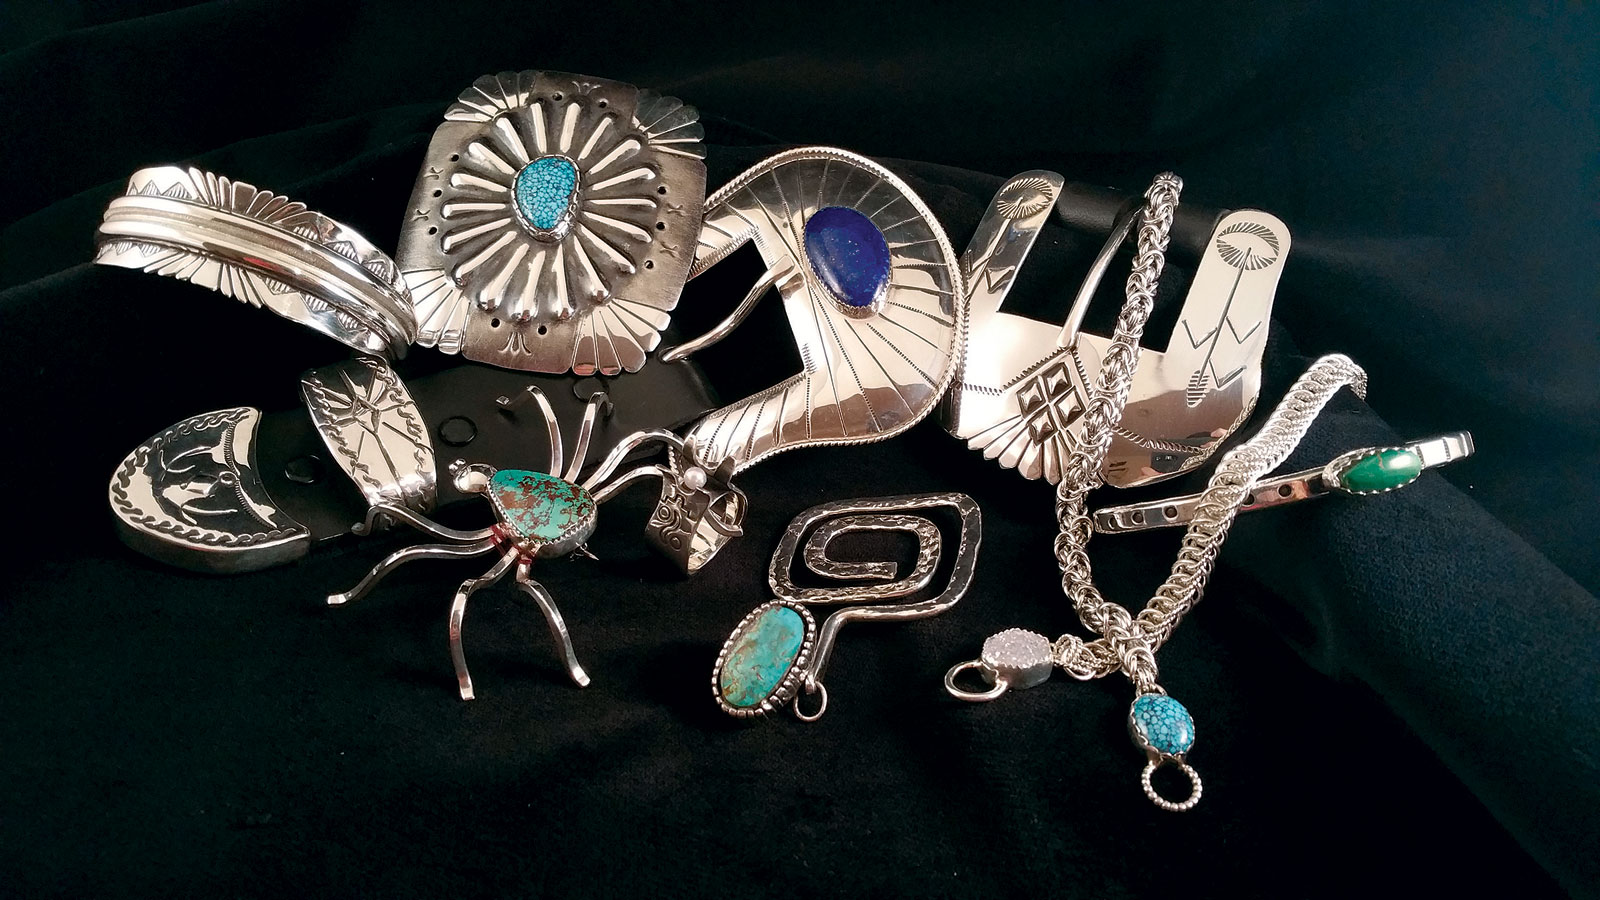 JEWELRY BY JERRY E. GAUSSOIN JR.  (left to right, top to bottom) : Navajo Mother Earth bracelet, 2017; Navajo Four Cardinal Directions concho style buckle, 2017; Ranger belt buckle, 2015; Simplicity cuff, 2017; Navajo Spider brooch, 2014; Pueblo Protector ring, 2017; Pueblo Maiden pendant, 2017; Byzantine Chain bracelet, 2017; and Half Persian chain bracelet, 2017. All jewelry is fabricated, some hand-stamped, formed and/or textured, set with turquoise or lapis.  Photograph by Jerry E. Gaussoin Jr.